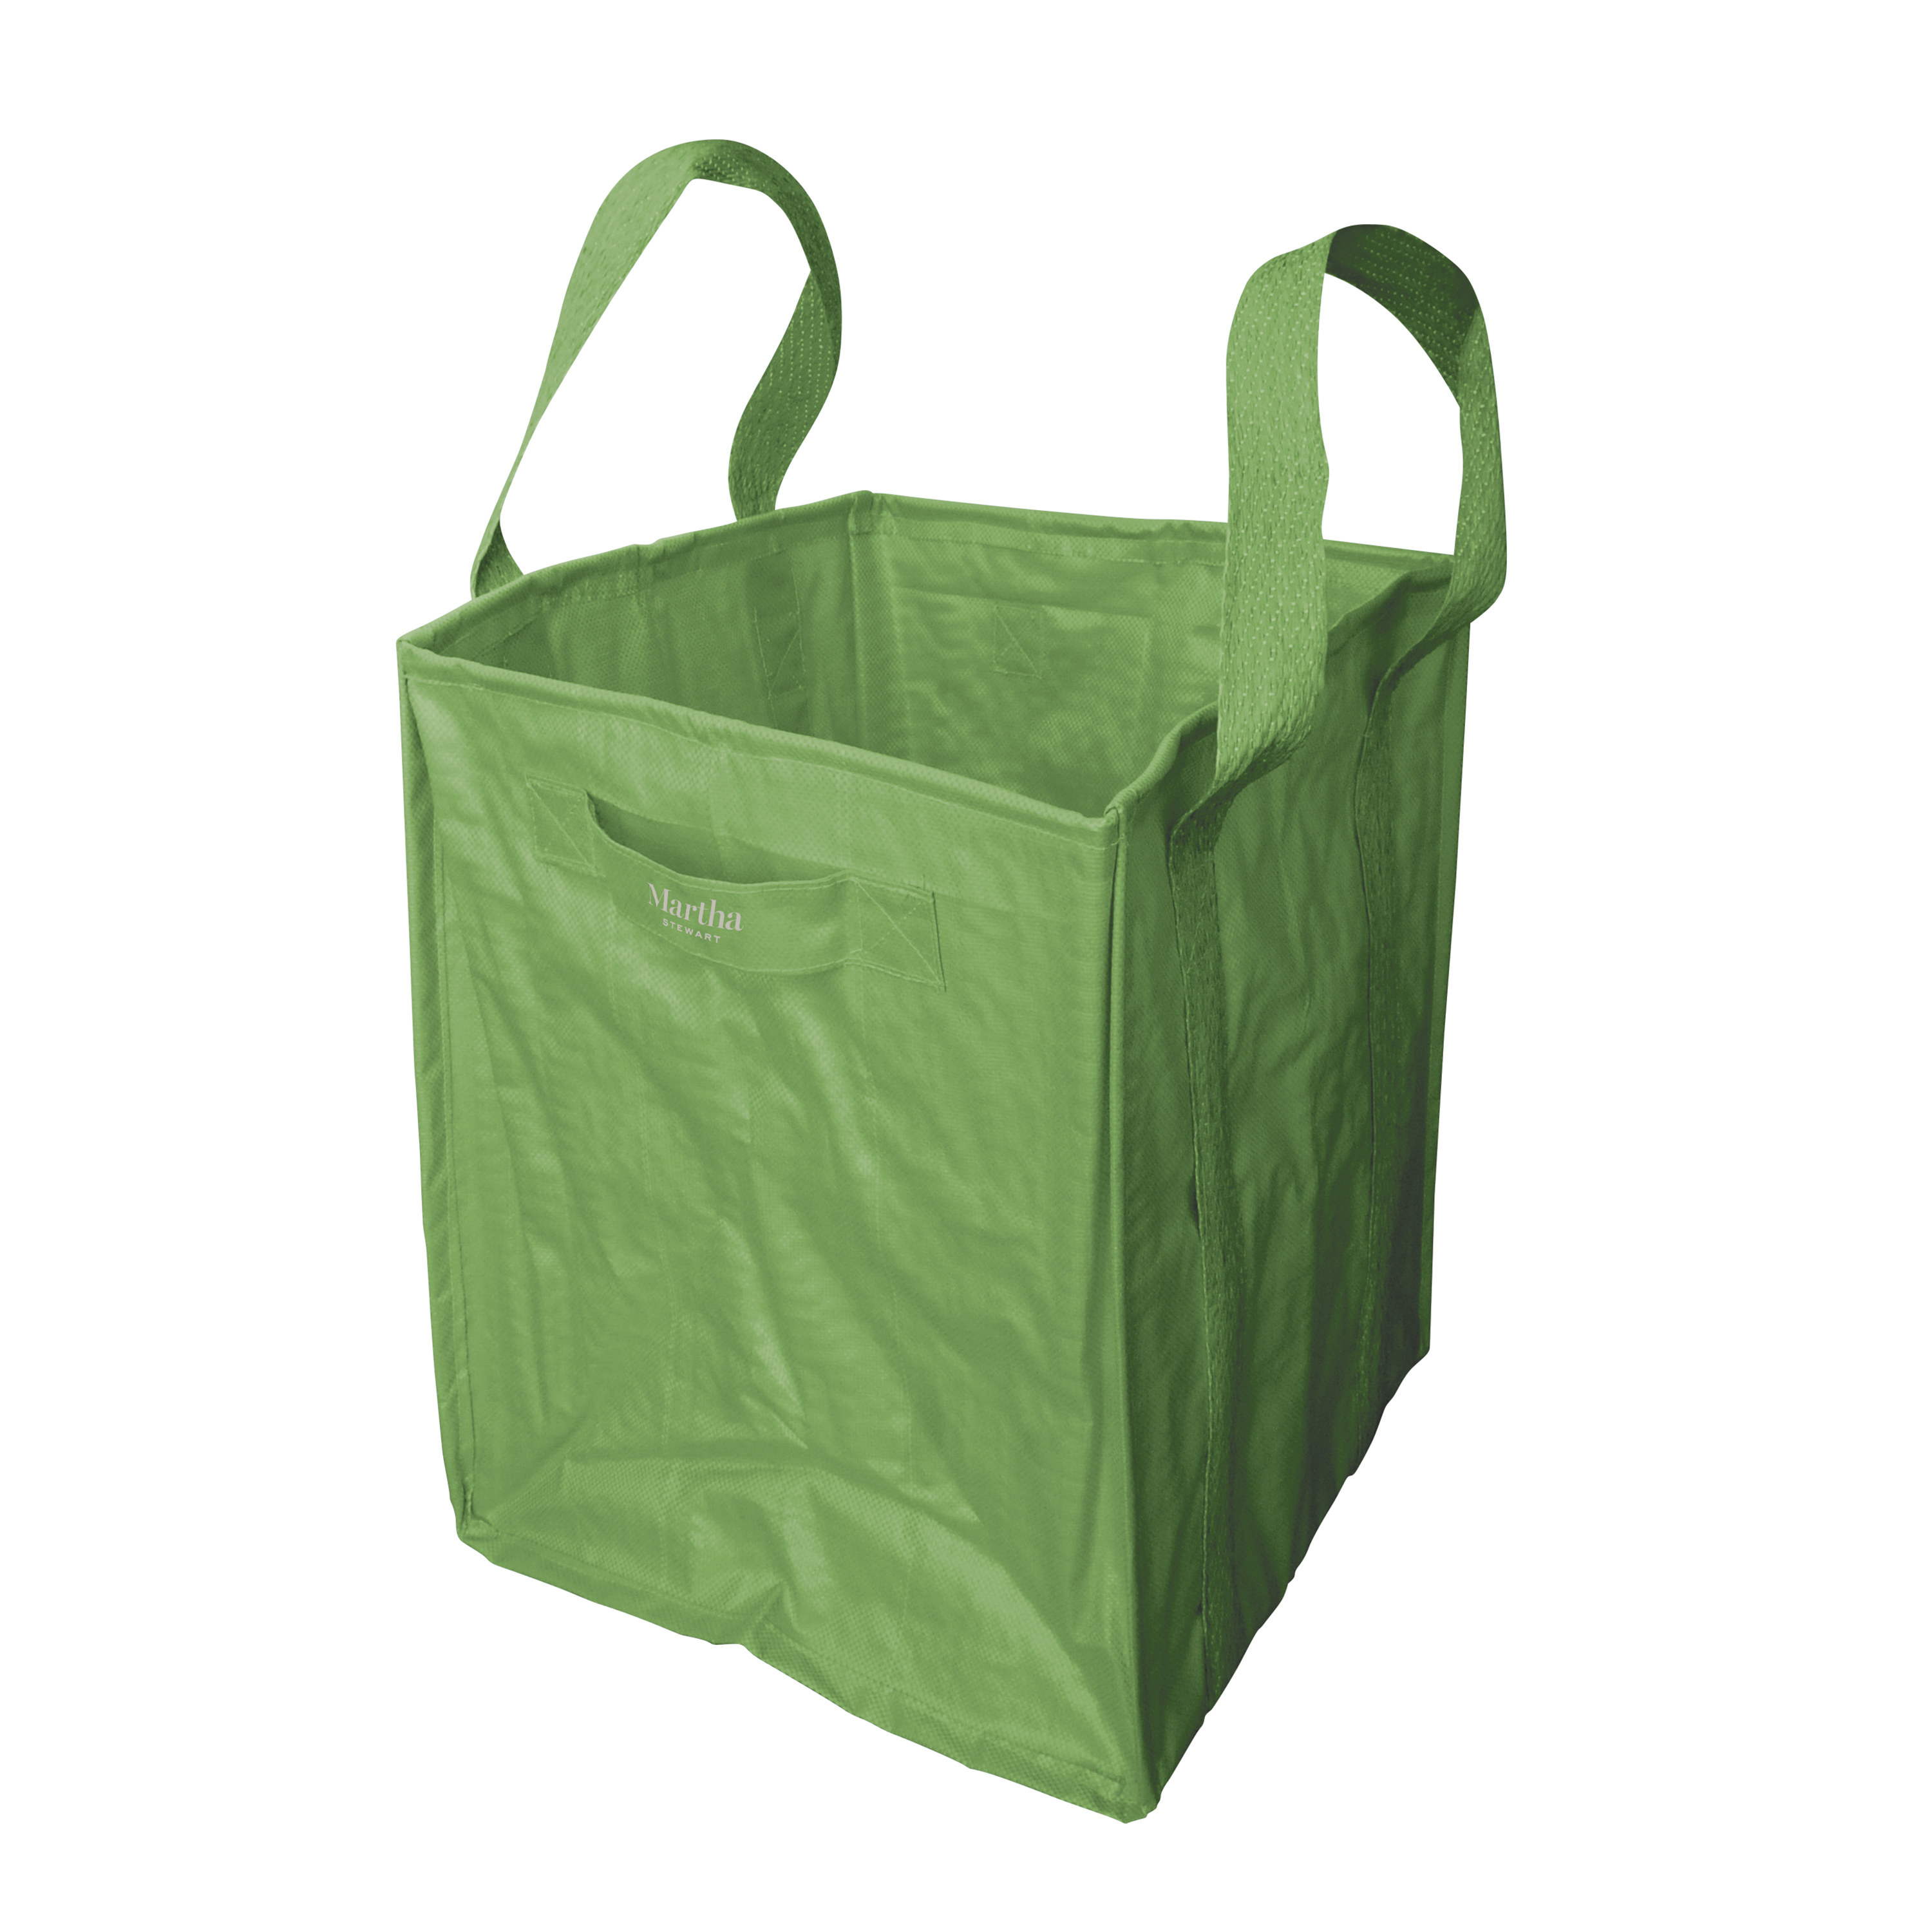 green reusable bag standing up on its own